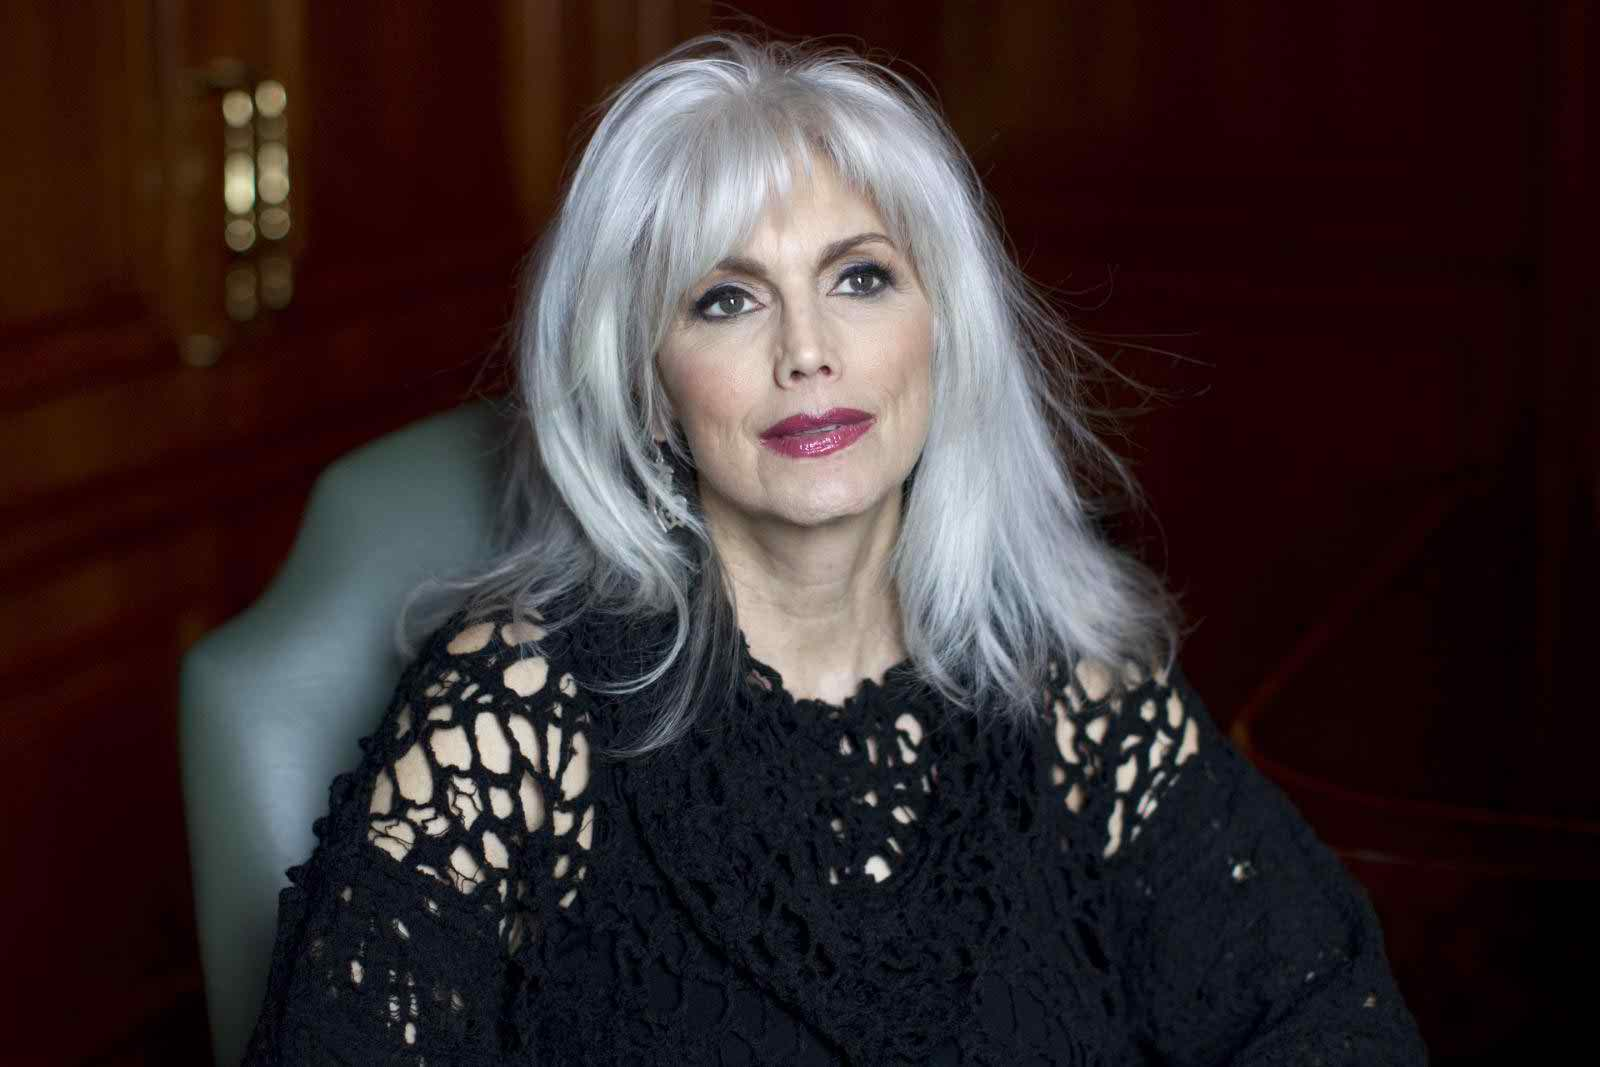 Emmylou Harris Hairstyle 2017 Hair Color0011